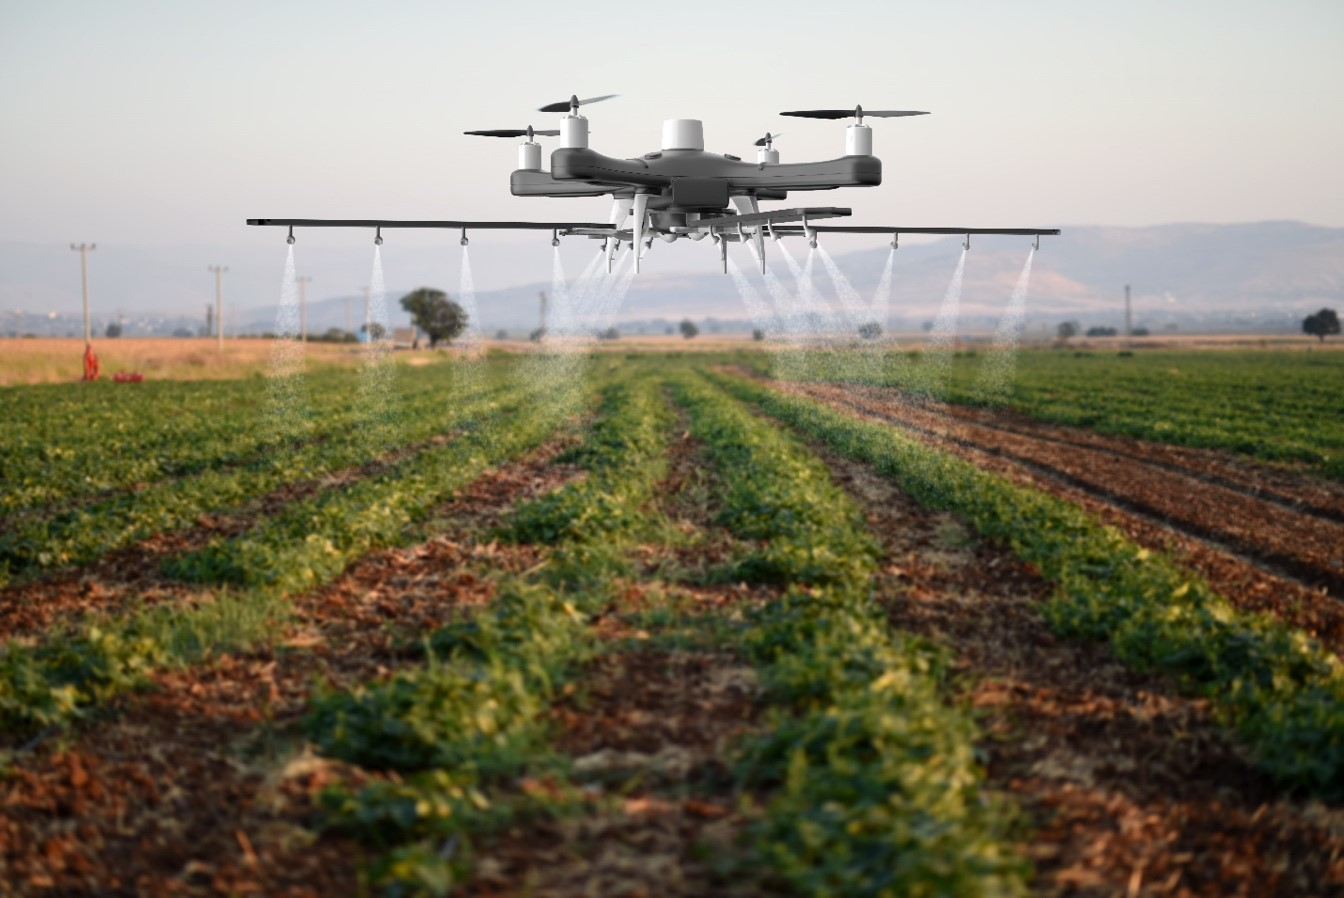 Drone used in farming for spraying crops